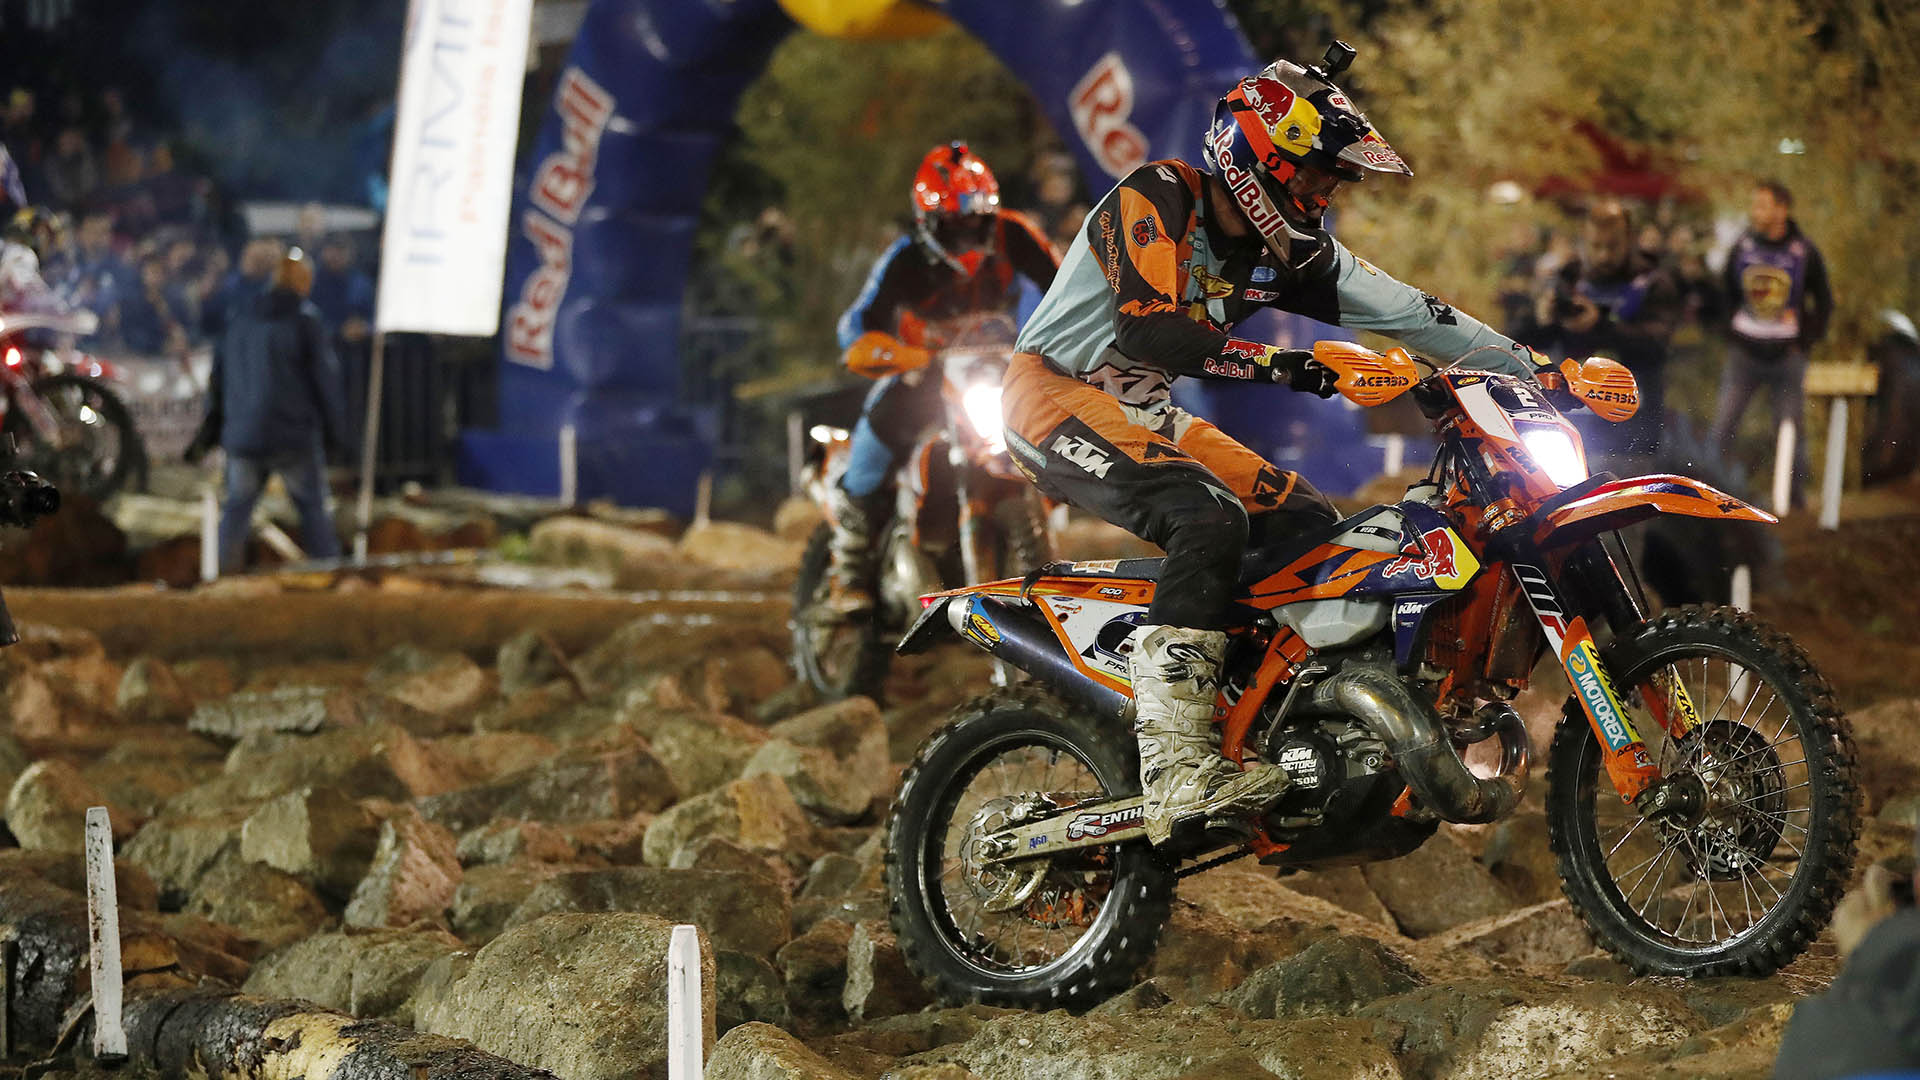 2021 Hard Enduro World Championship Series Schedule - Cody Webb